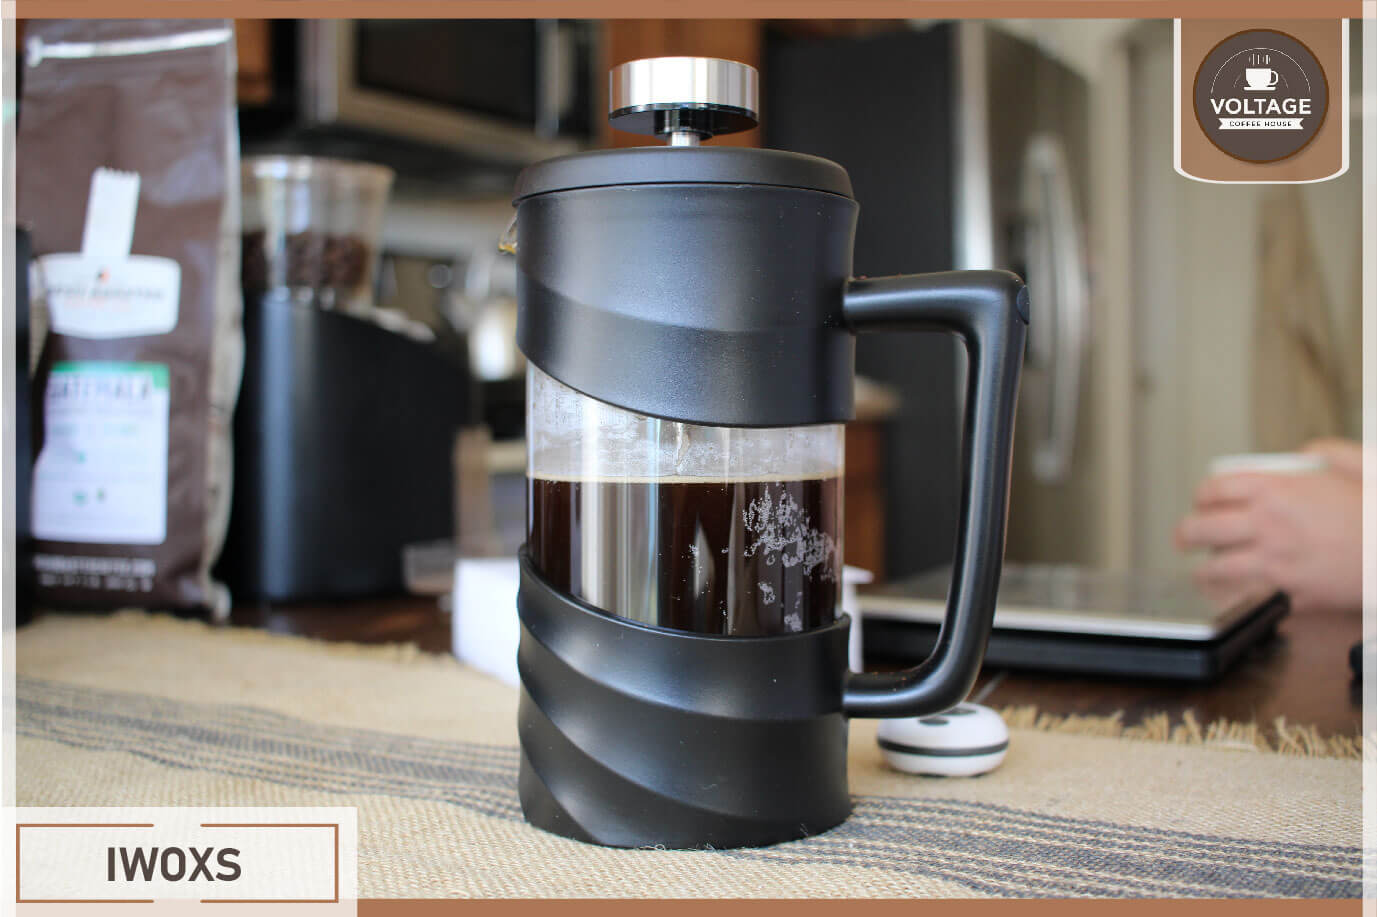 Iwoxs french press maker review